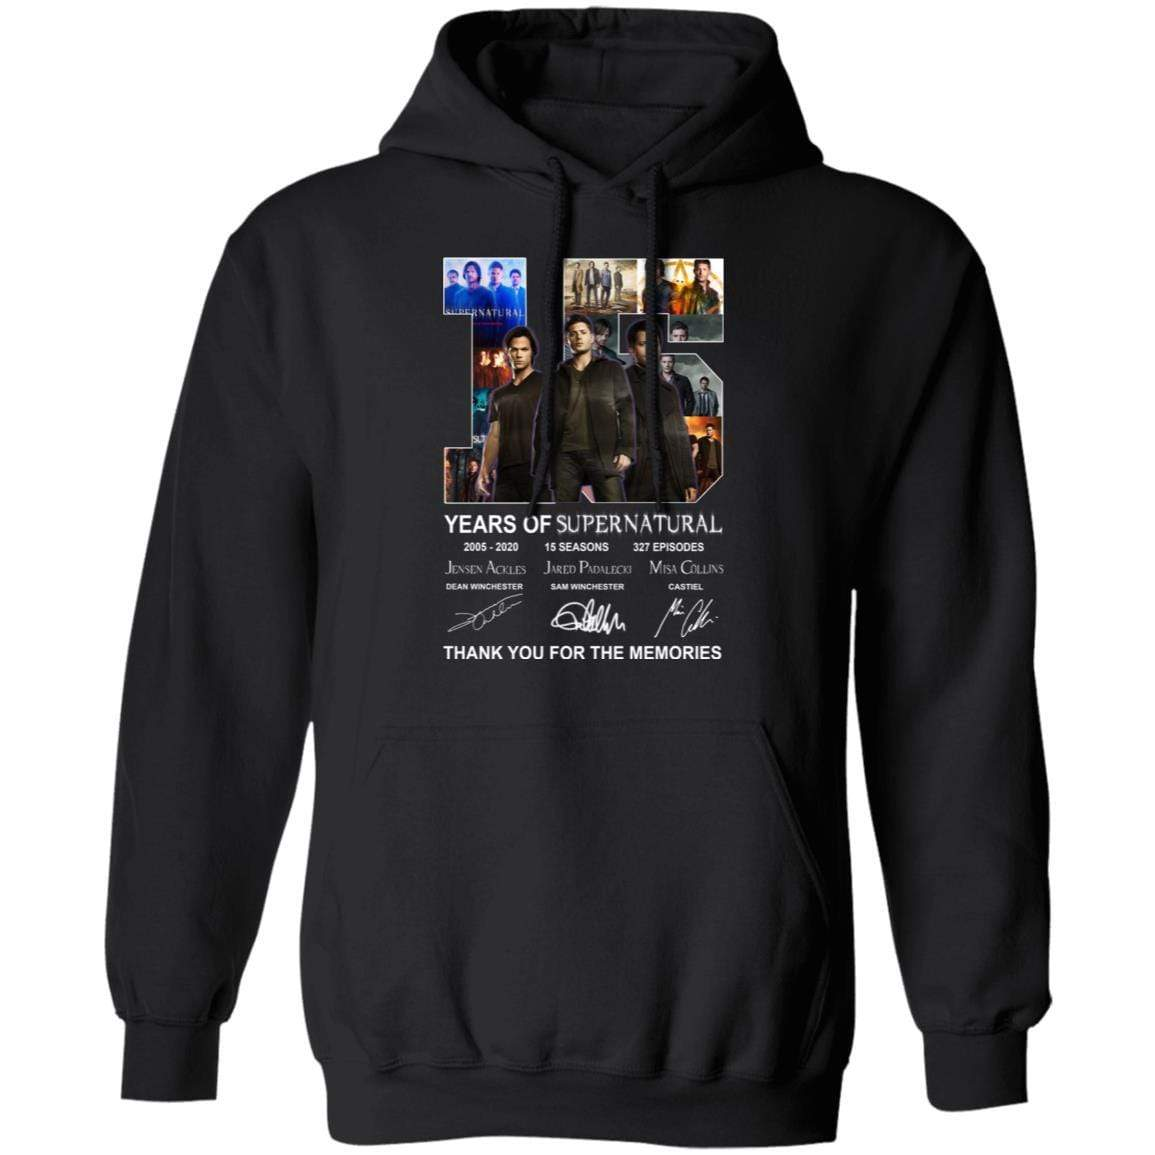 15 Years Of Supernatural Thank You For My Memories T-Shirts, Hoodies 541-4740-86894547-23087 - Tee Ript